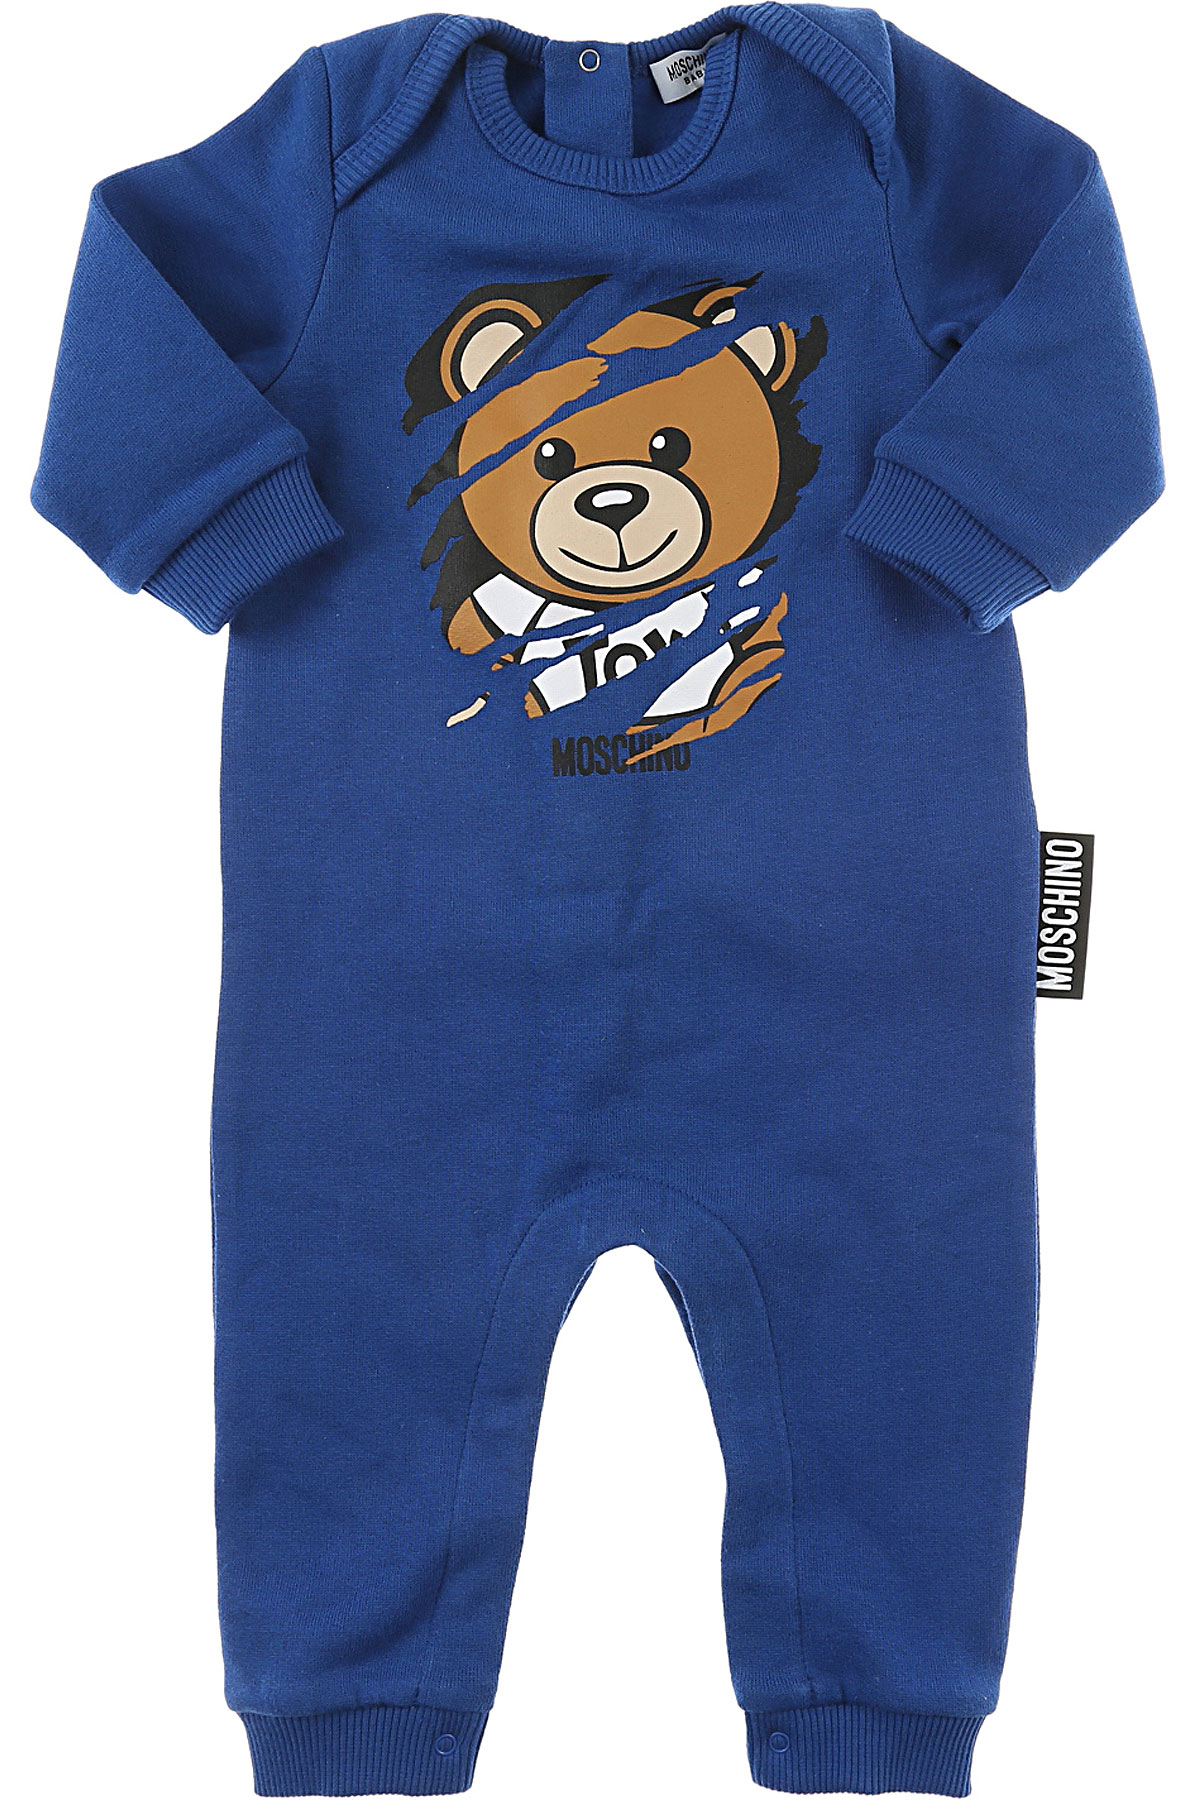 Image of Moschino Baby Bodysuits & Onesies for Boys, Blue, Cotton, 2017, 6M